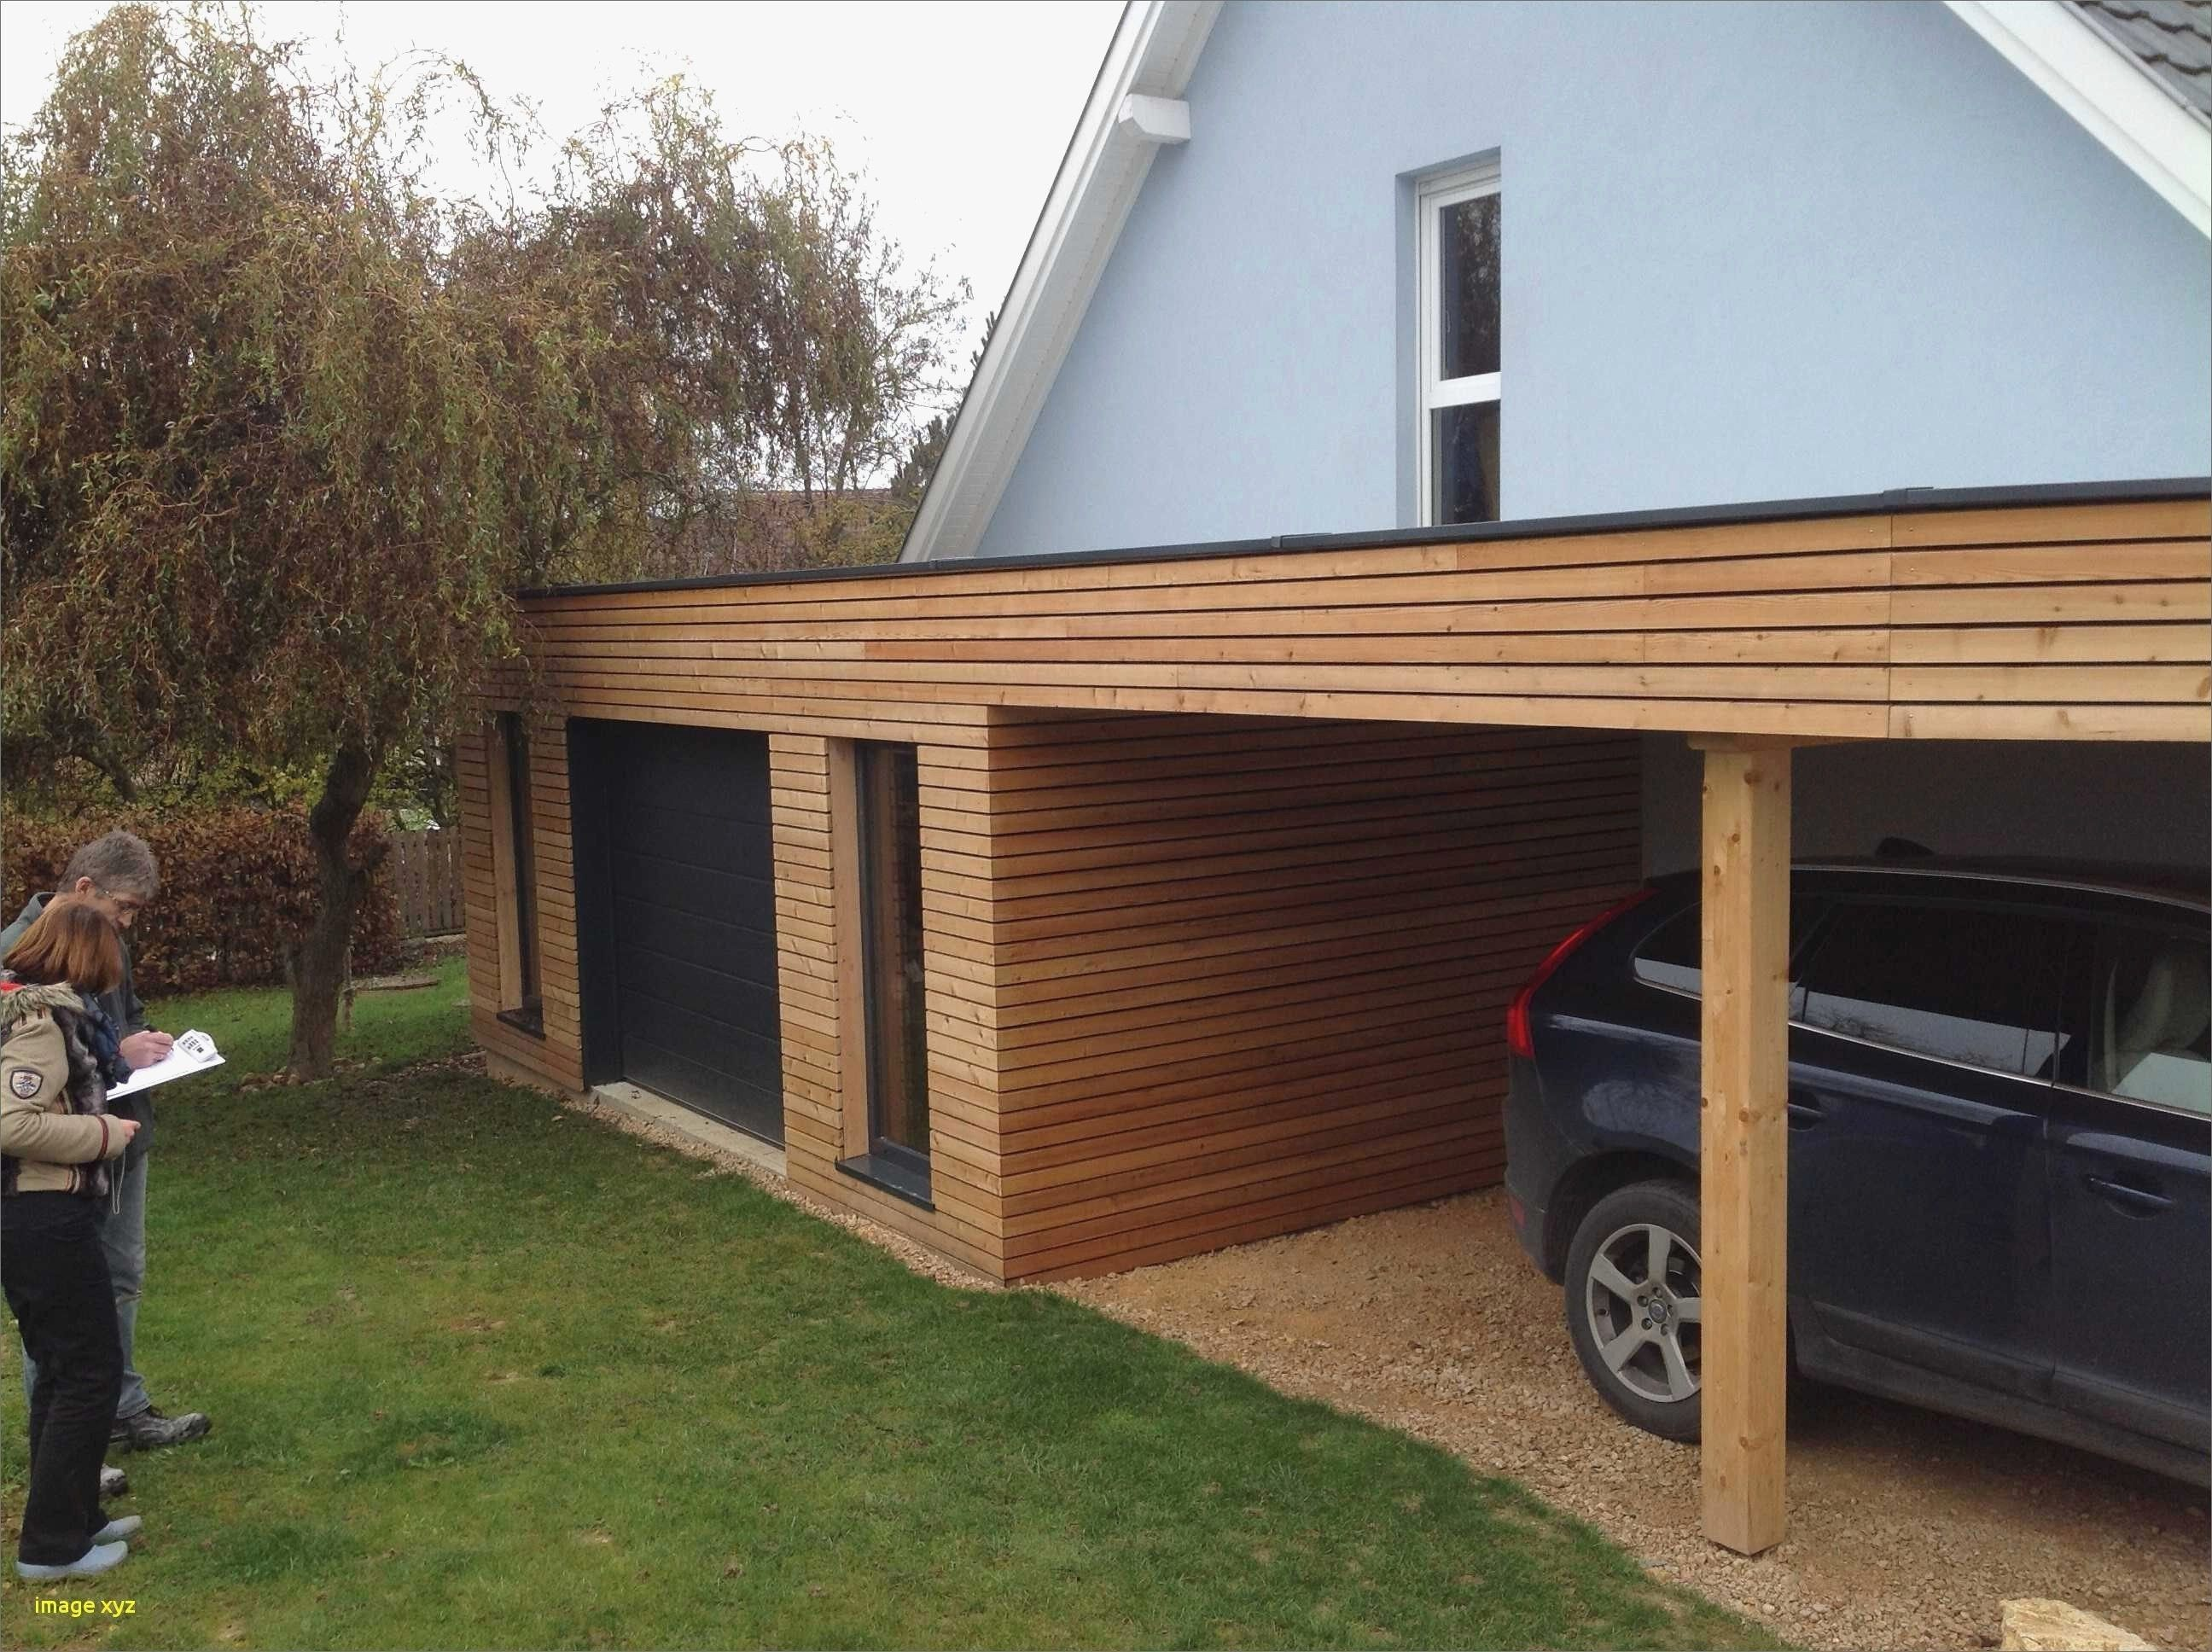 Pin By Gus Chrisanthopoulos On Modern Carport In 2020 Modern Carport Carport Pool House